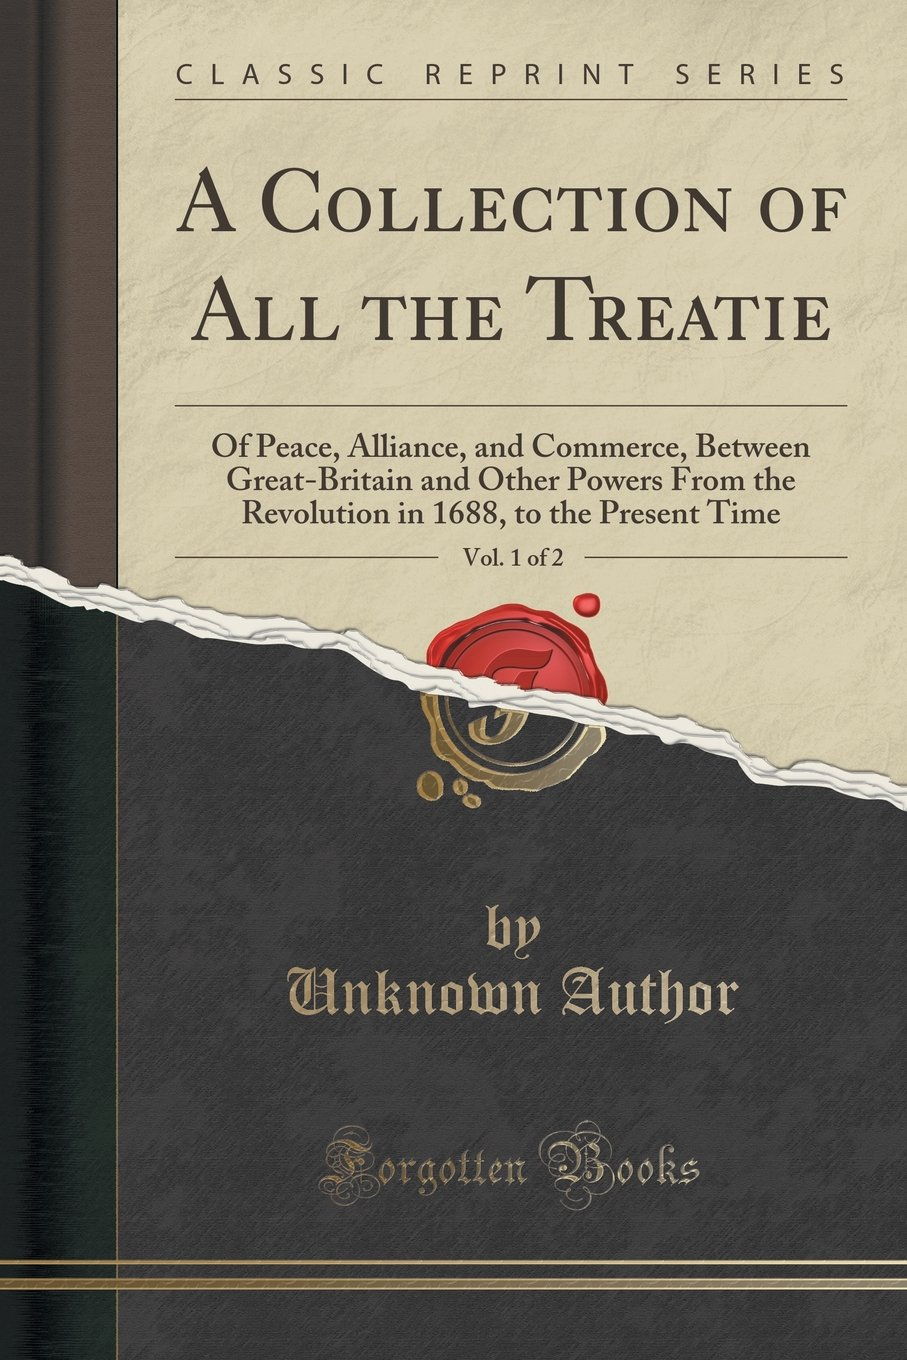 Read Online A Collection of All the Treatie, Vol. 1 of 2: Of Peace, Alliance, and Commerce, Between Great-Britain and Other Powers From the Revolution in 1688, to the Present Time (Classic Reprint) ebook